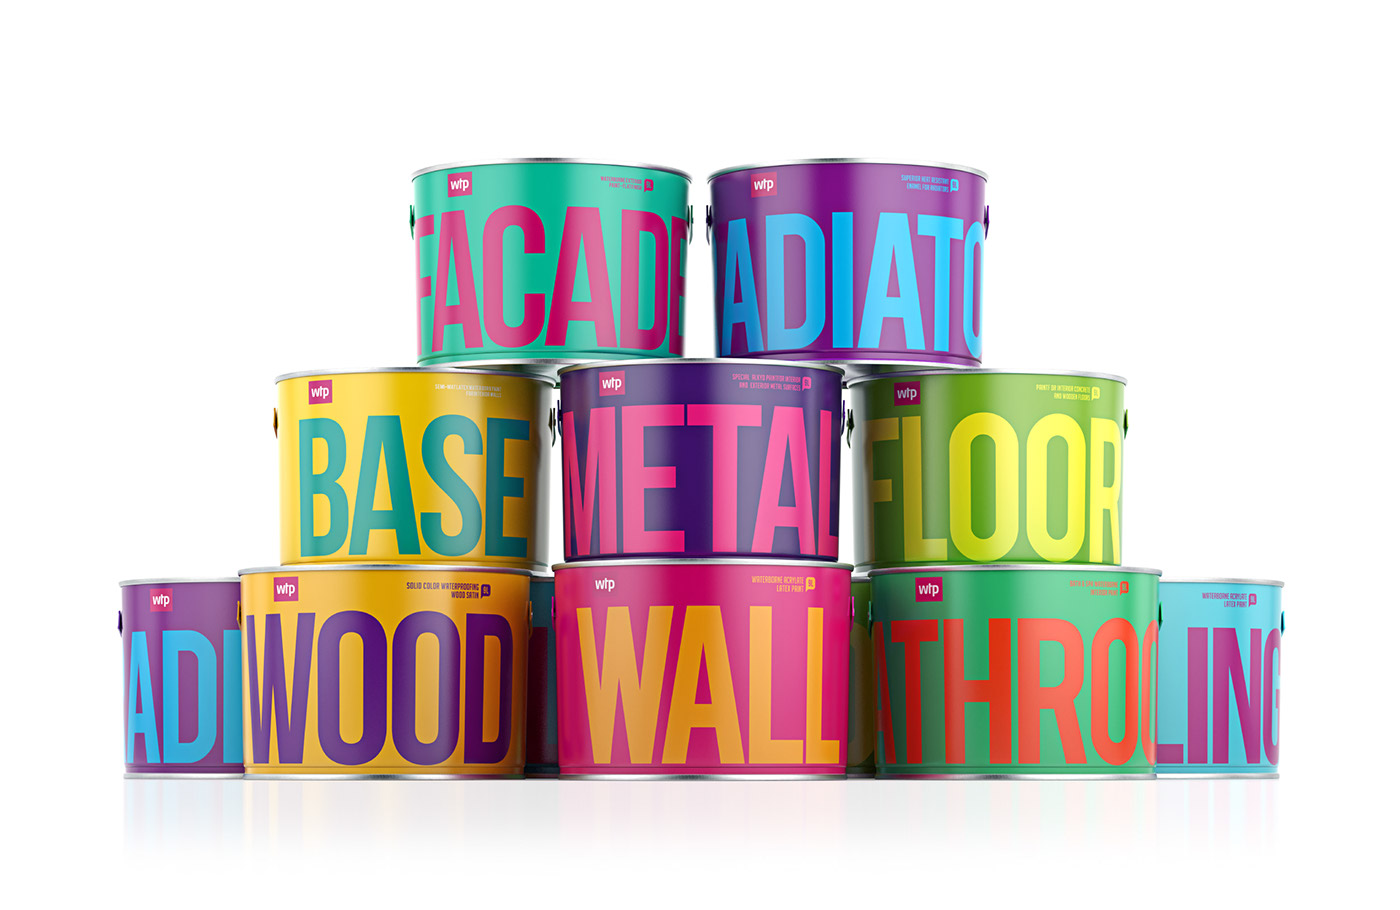 paint bright package identity logo colors Finnish friendliness innovation paint can logo development brand identity paints colorful lettering